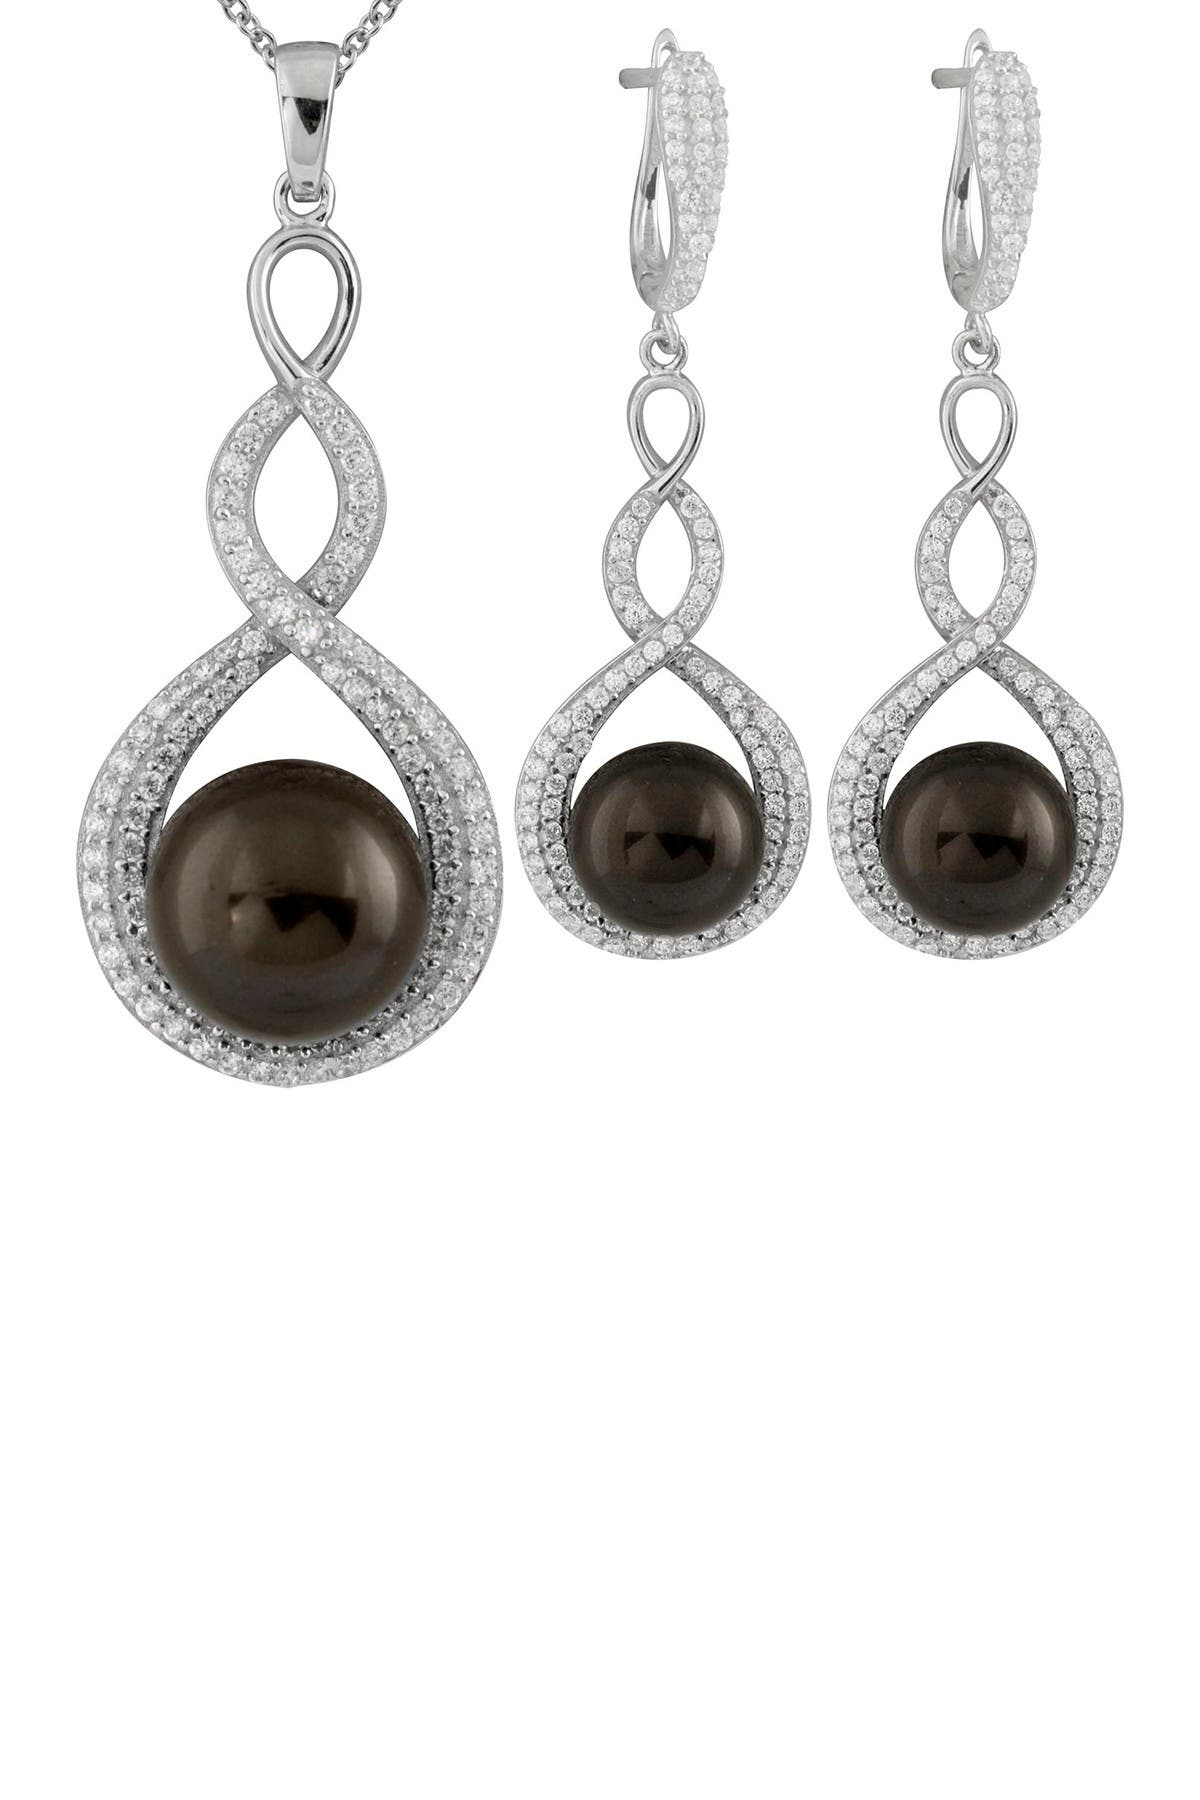 Image of Splendid Pearls 2-Piece 9-10mm Black Shell Pearl Necklace & Earrings Set